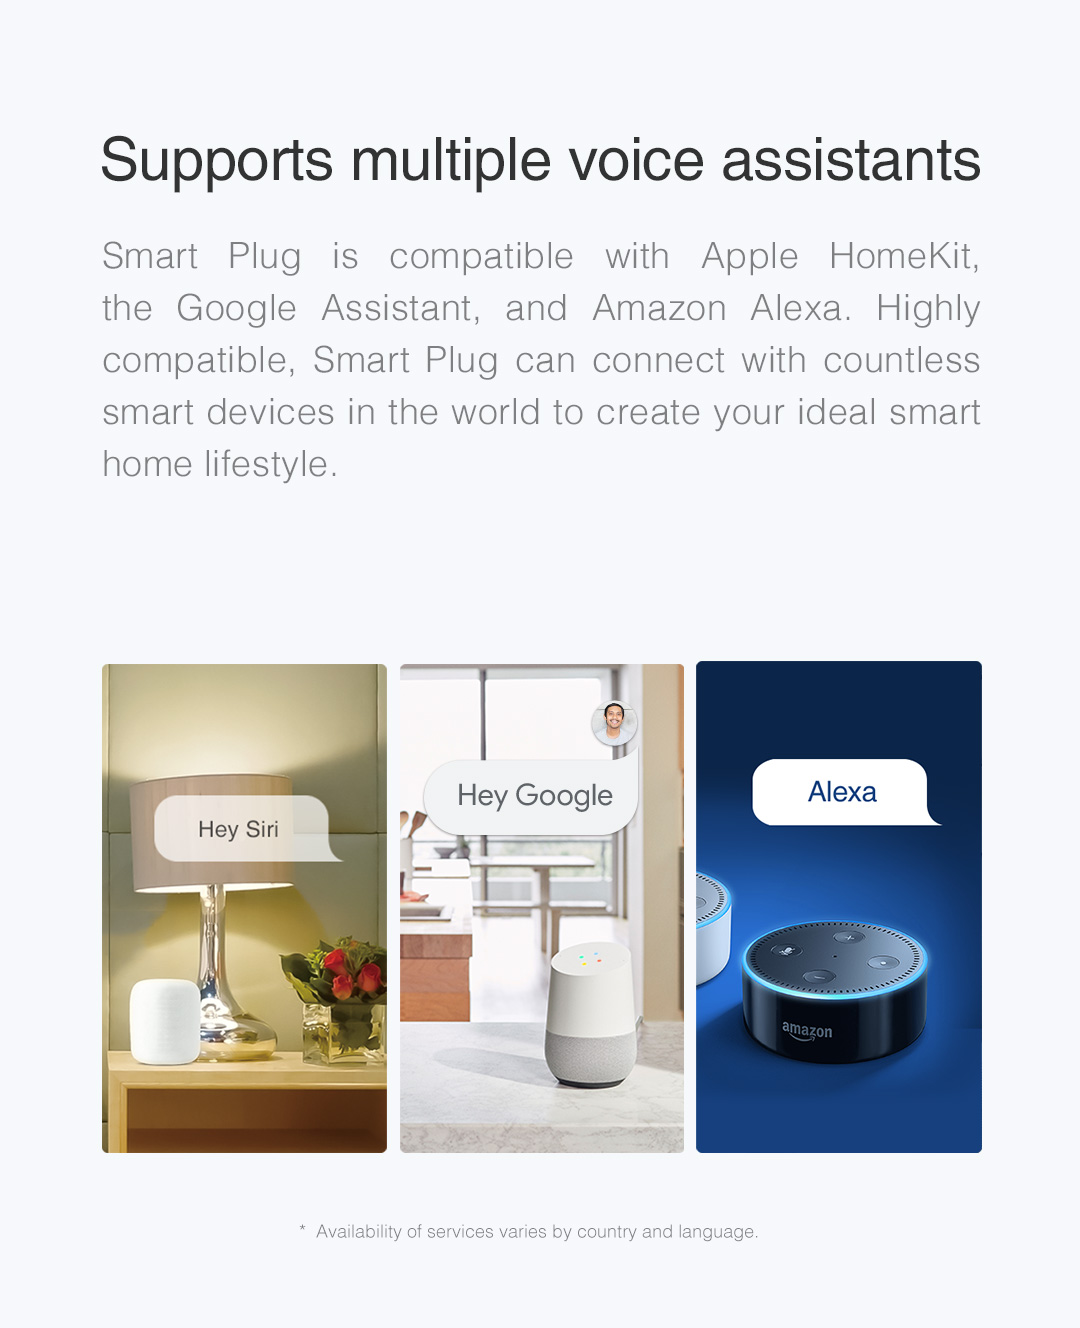 You can use Siri or Alexa to easily control the appliances connected to our Smart Plug.